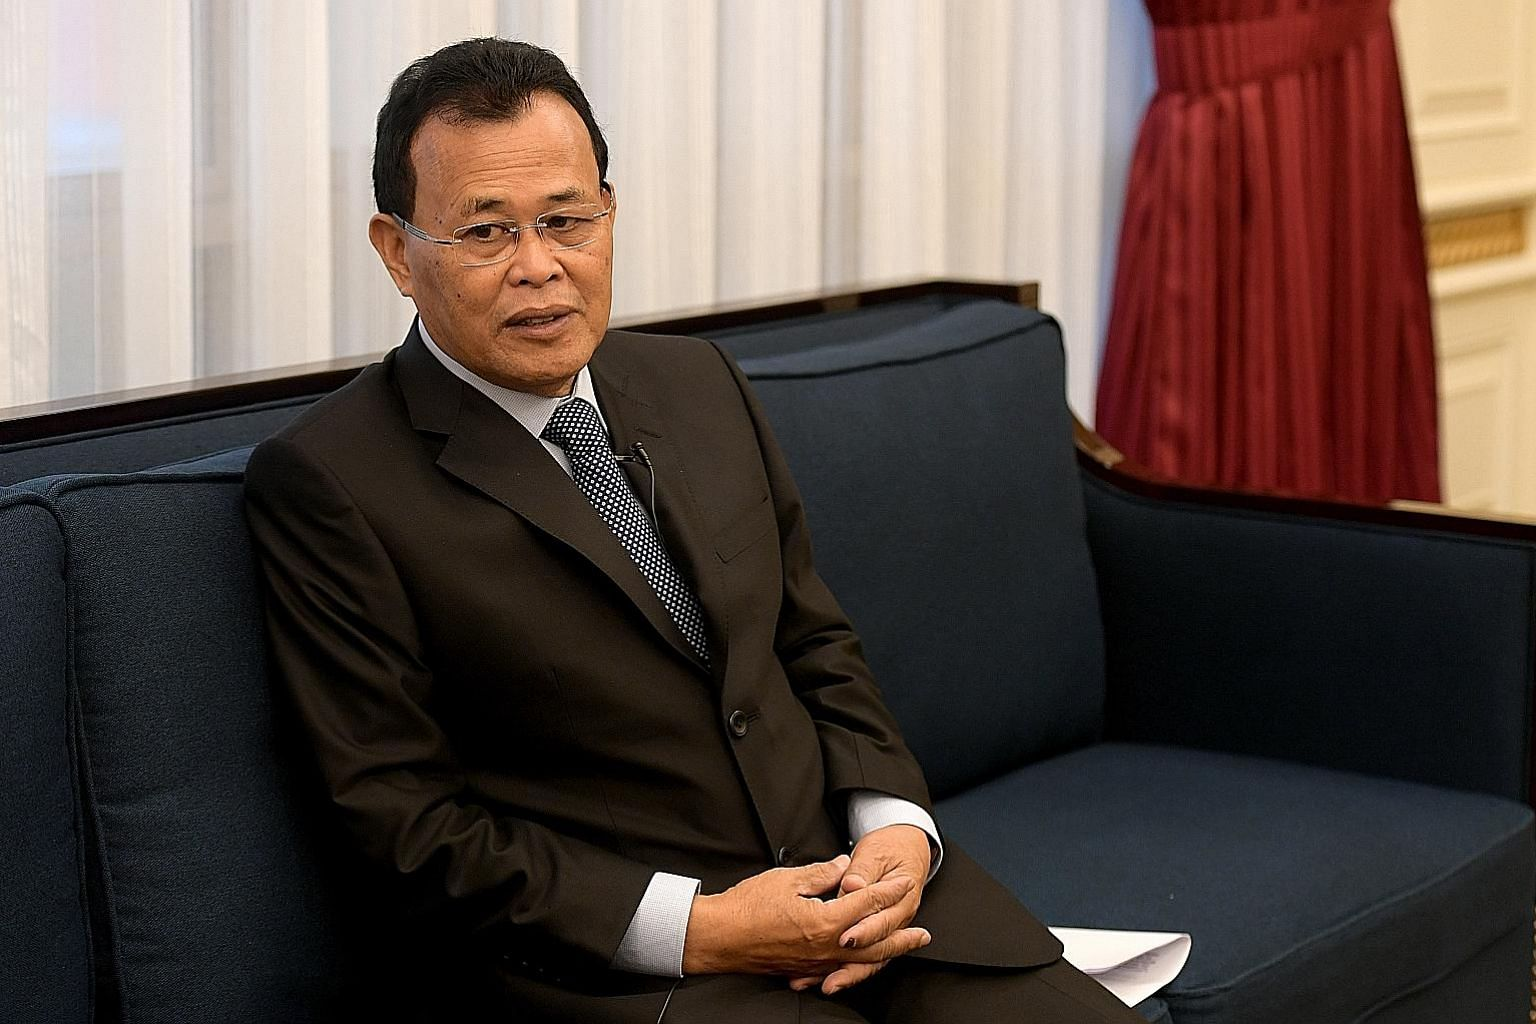 The resignation of Datuk Osman Sapian as Johor's Menteri Besar could result in an ugly constitutional crisis. ST FILE PHOTO